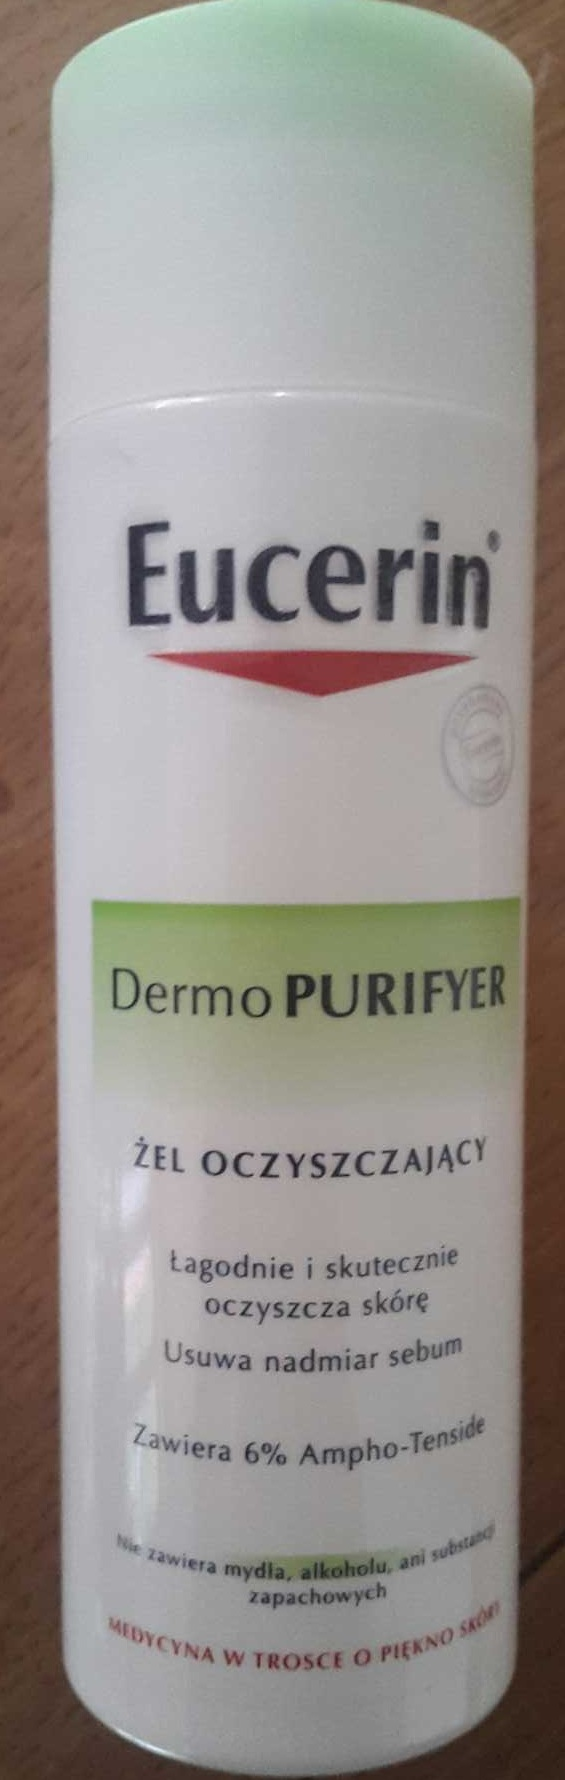 Dermo Purifyer - Product